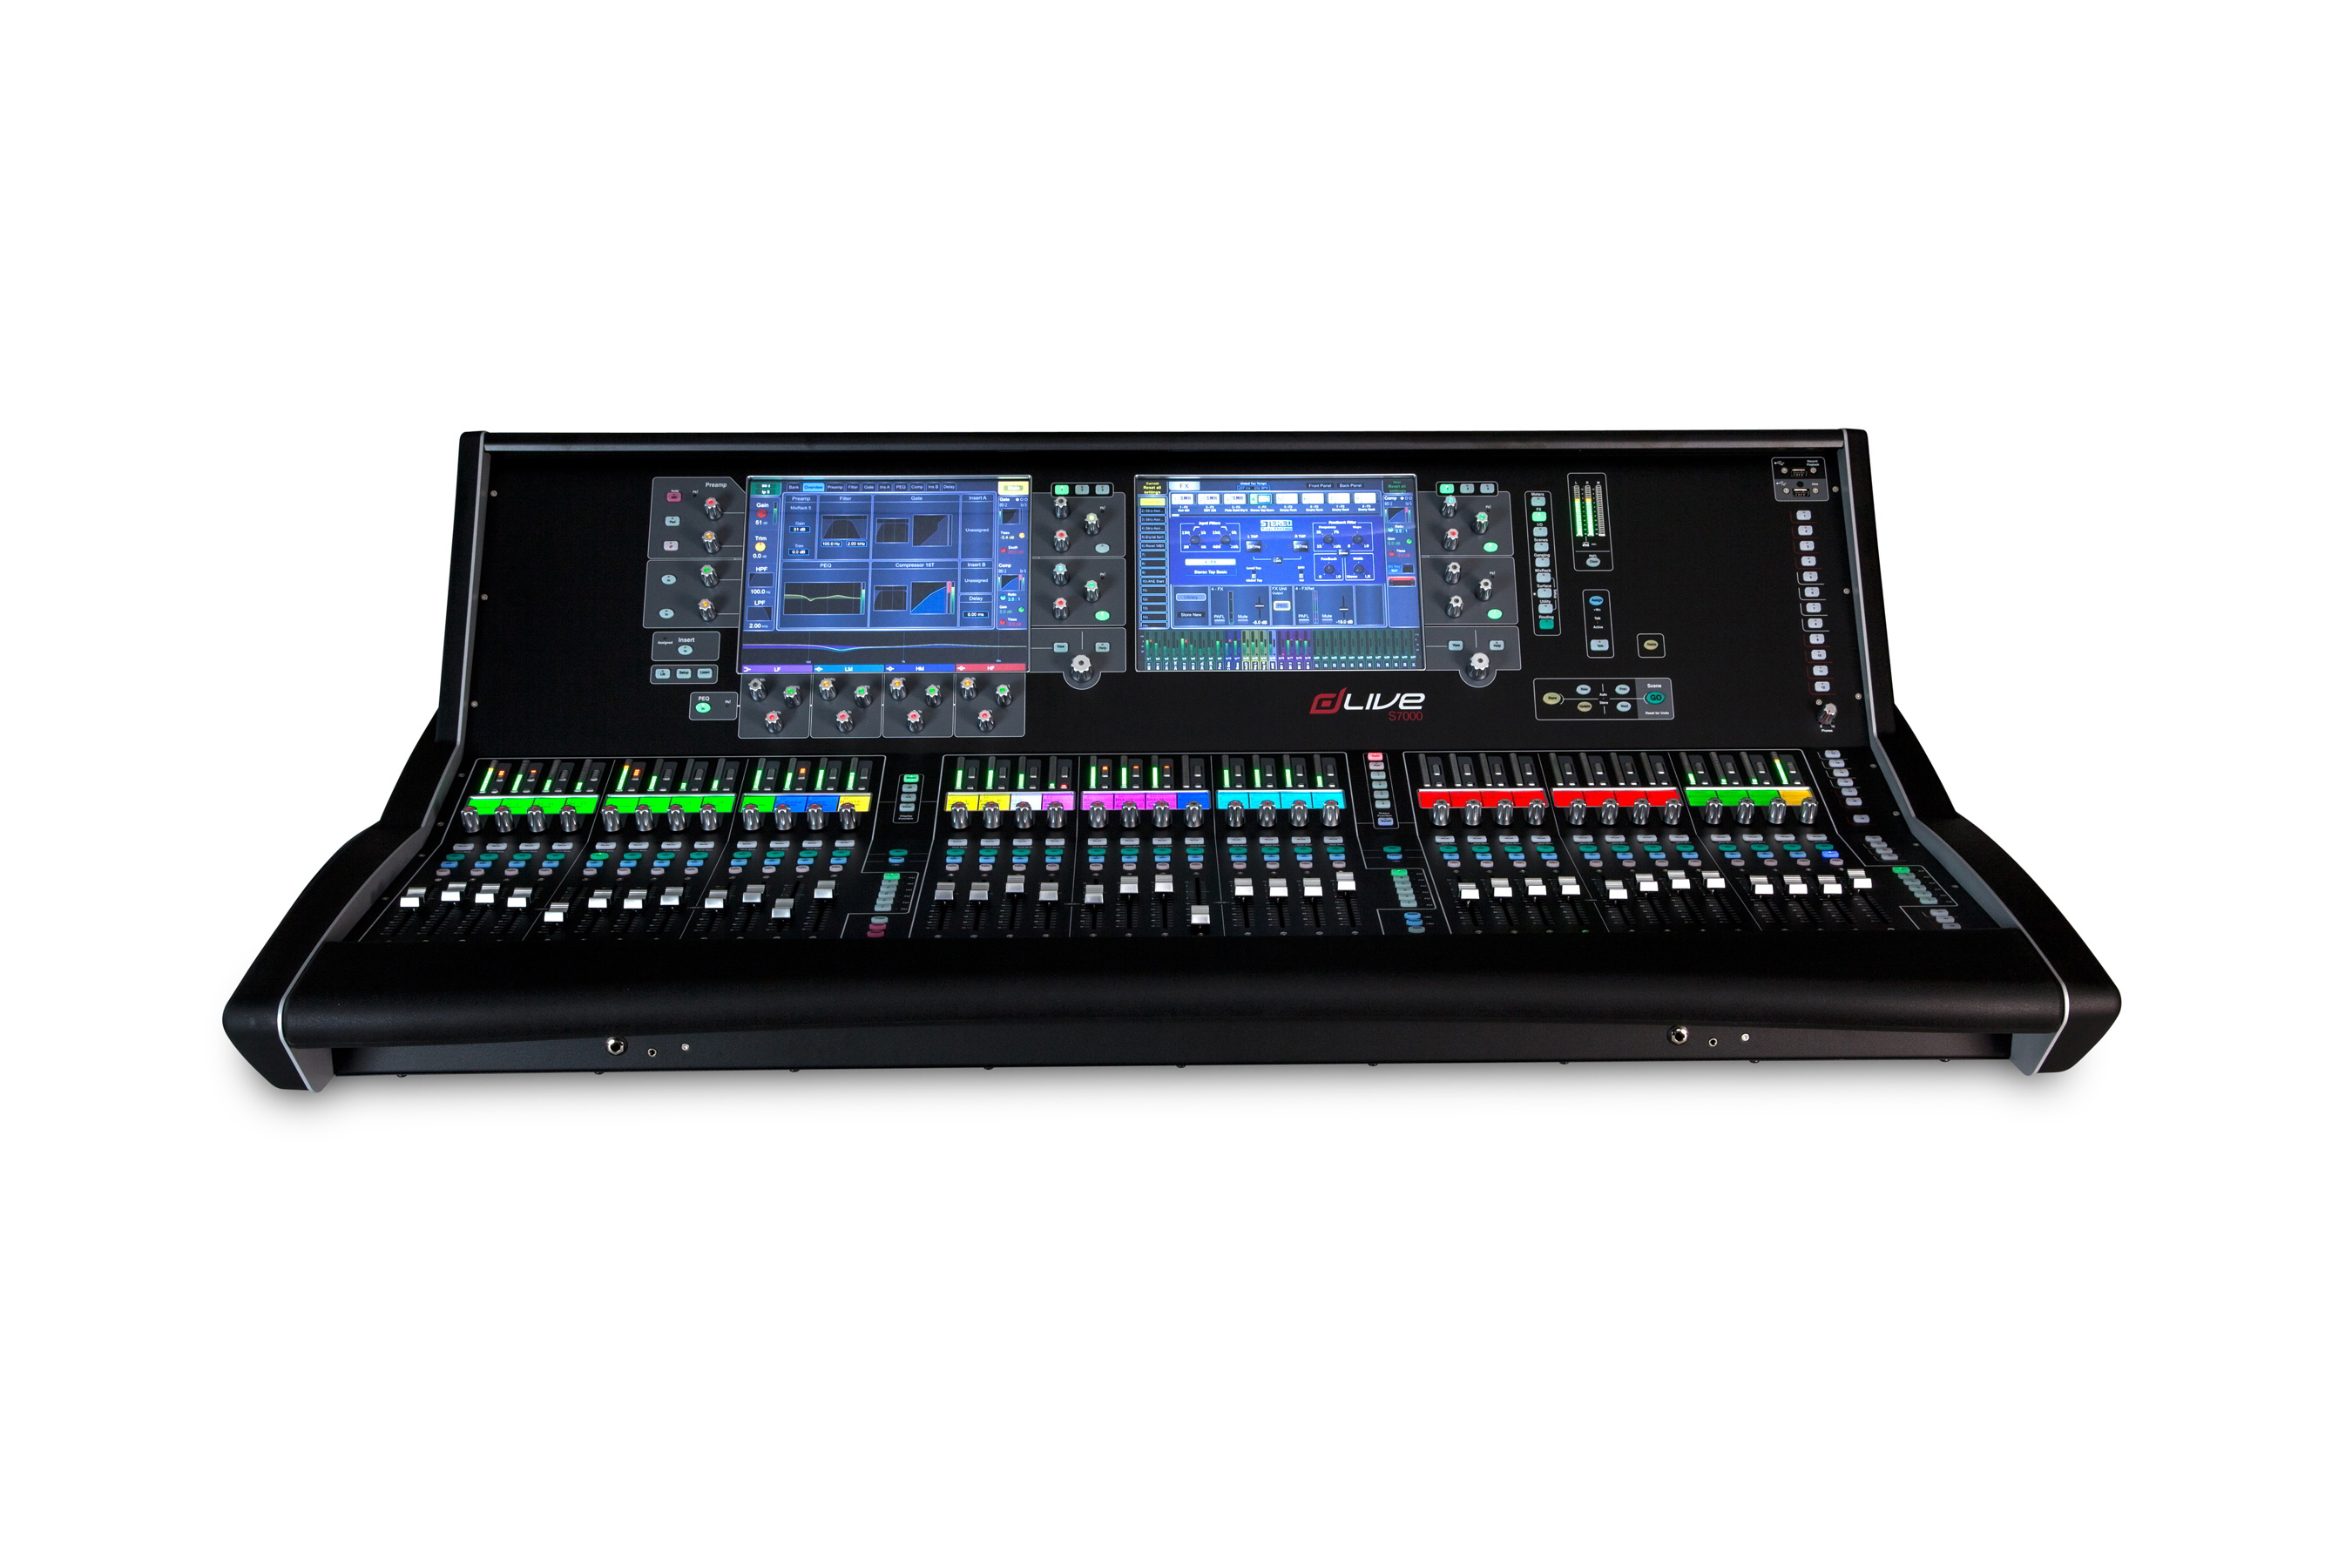 dLive S7000パネル画像